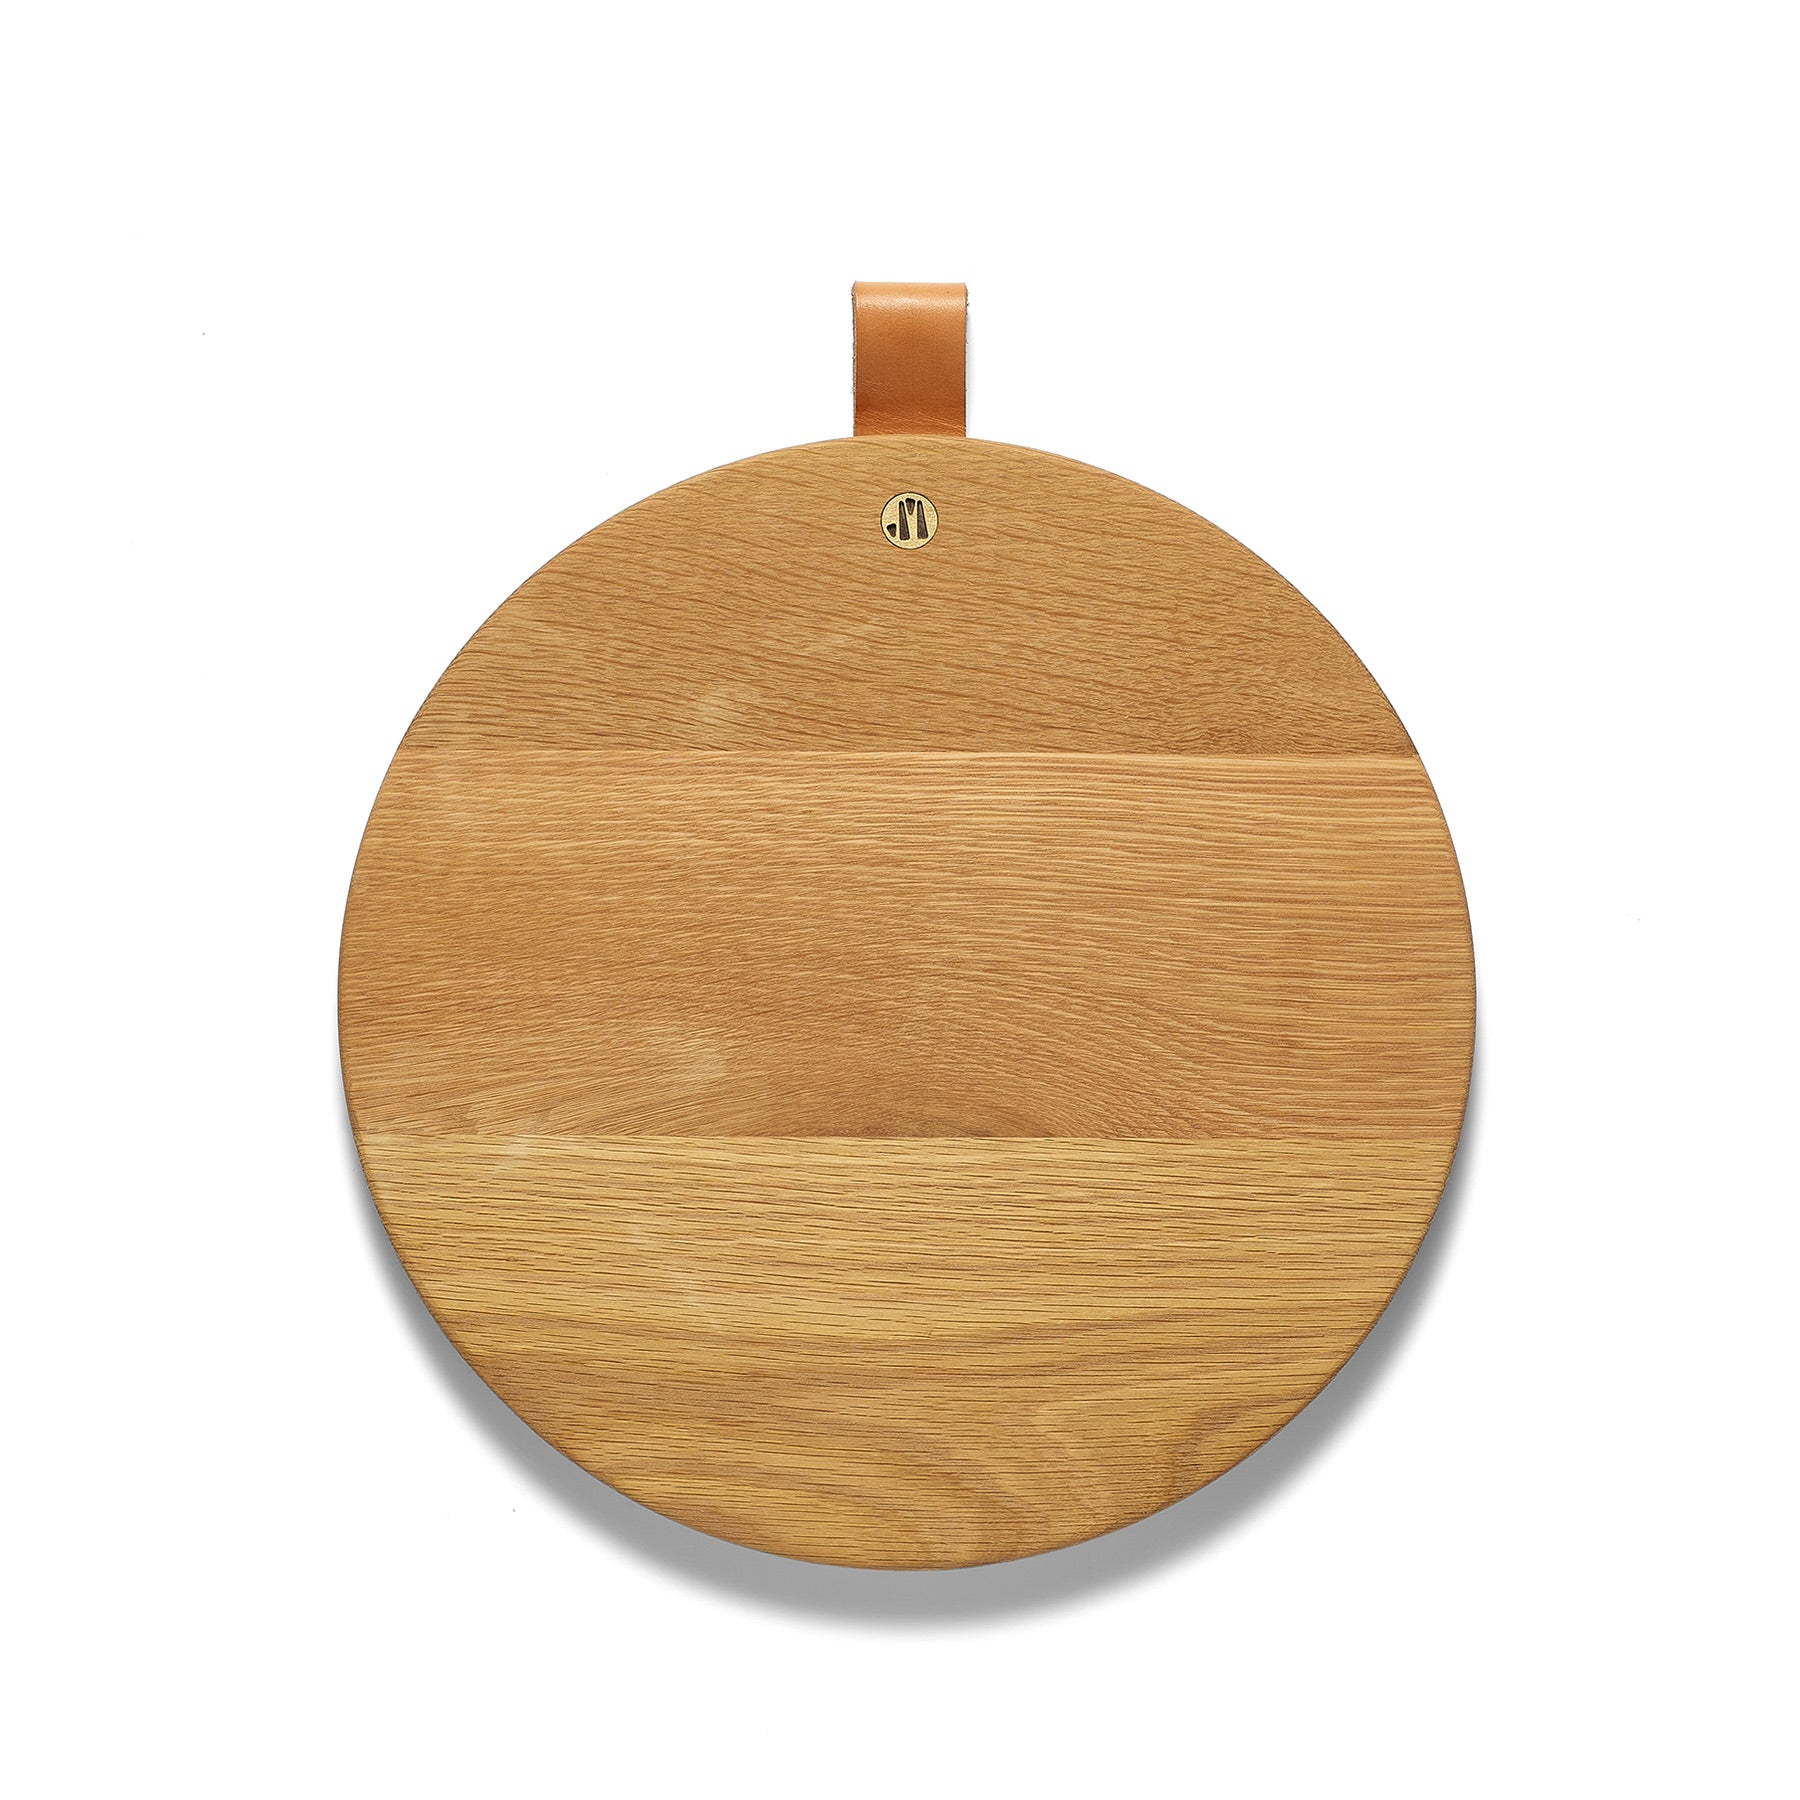 Round White Oak Cutting Board with Leather Tab Zoom Image 1